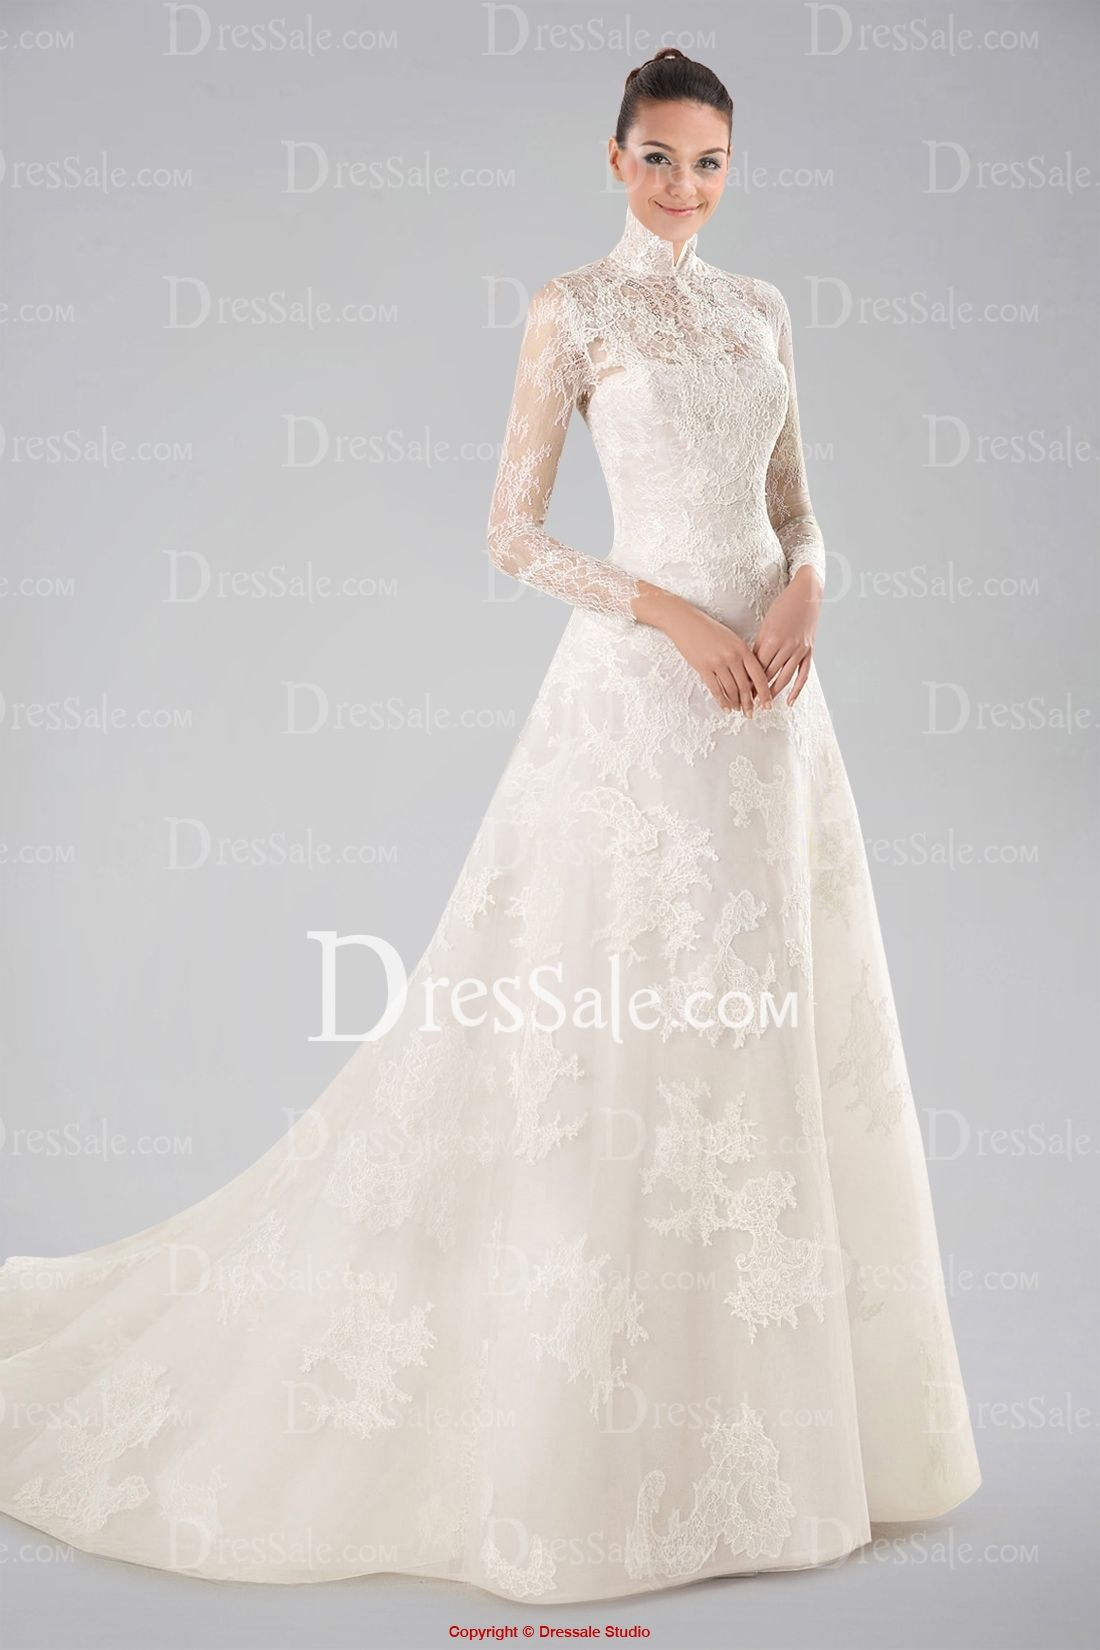 Stunning High Collar Wedding Dress With Lace Overlay And Long Sleeves